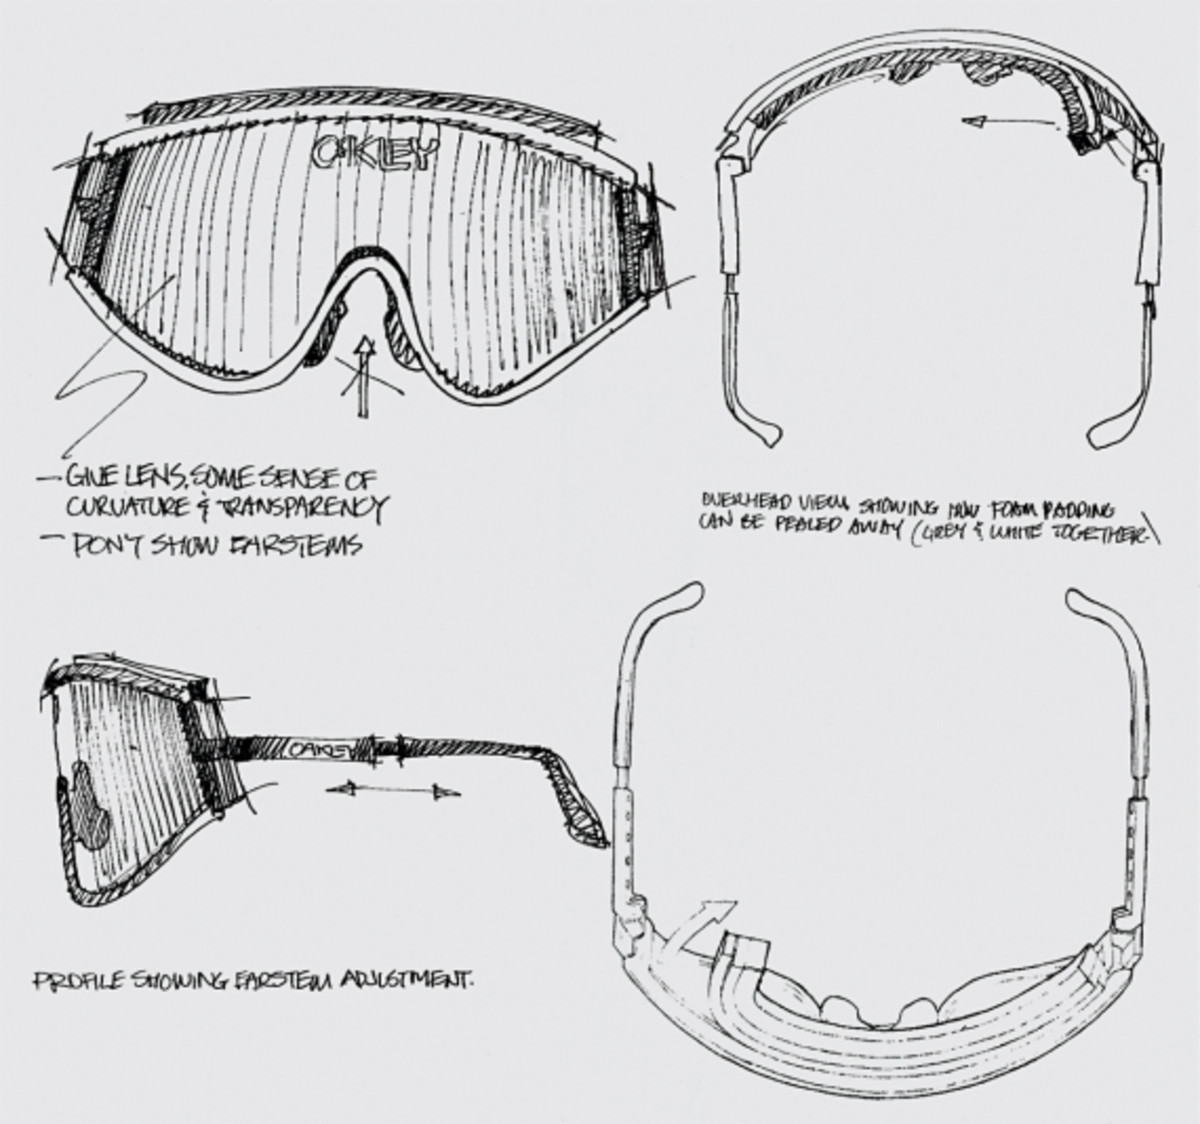 oakley-book-celebrating-40-years-of-design-and-innovation-08